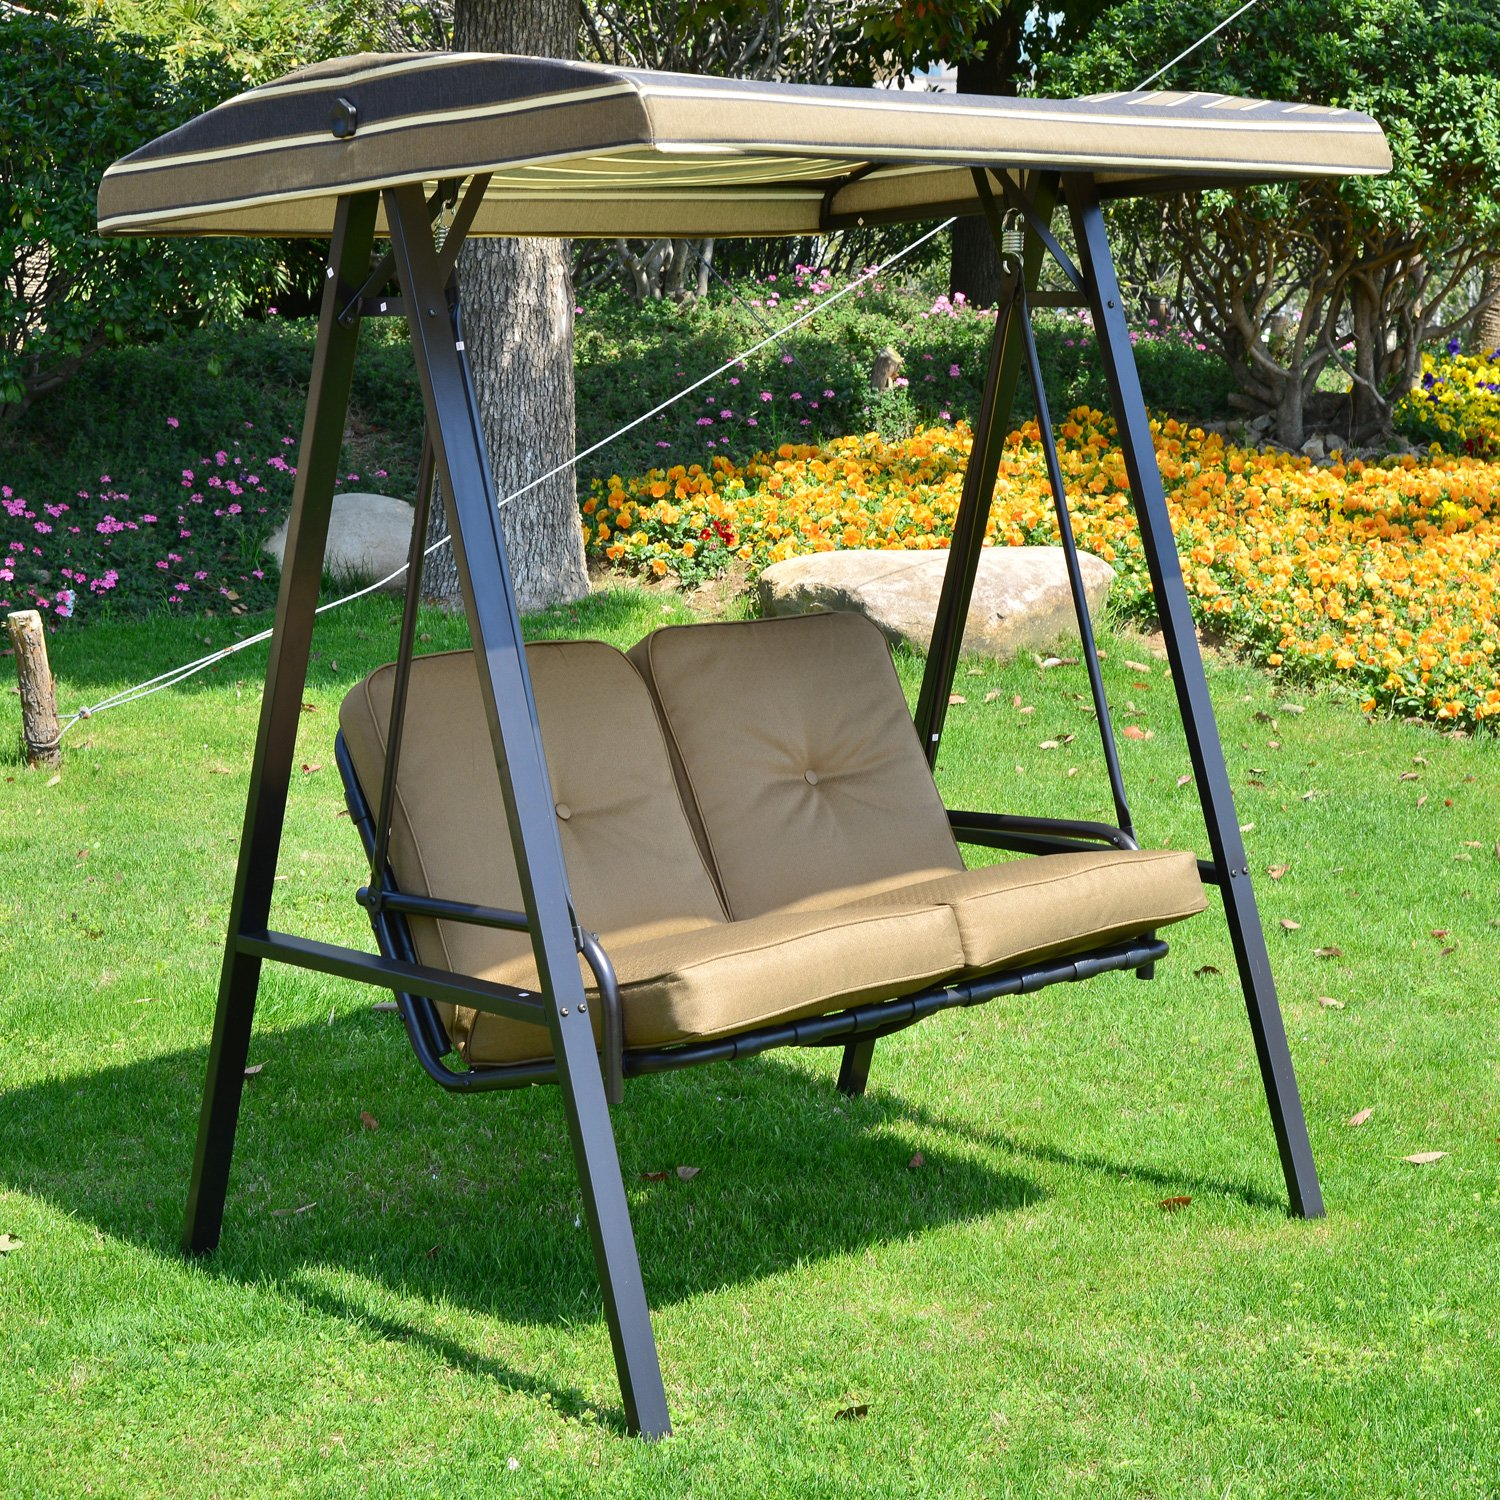 Outsunny Garden Patio Swing Chair 2 Seater Swinging Hammock